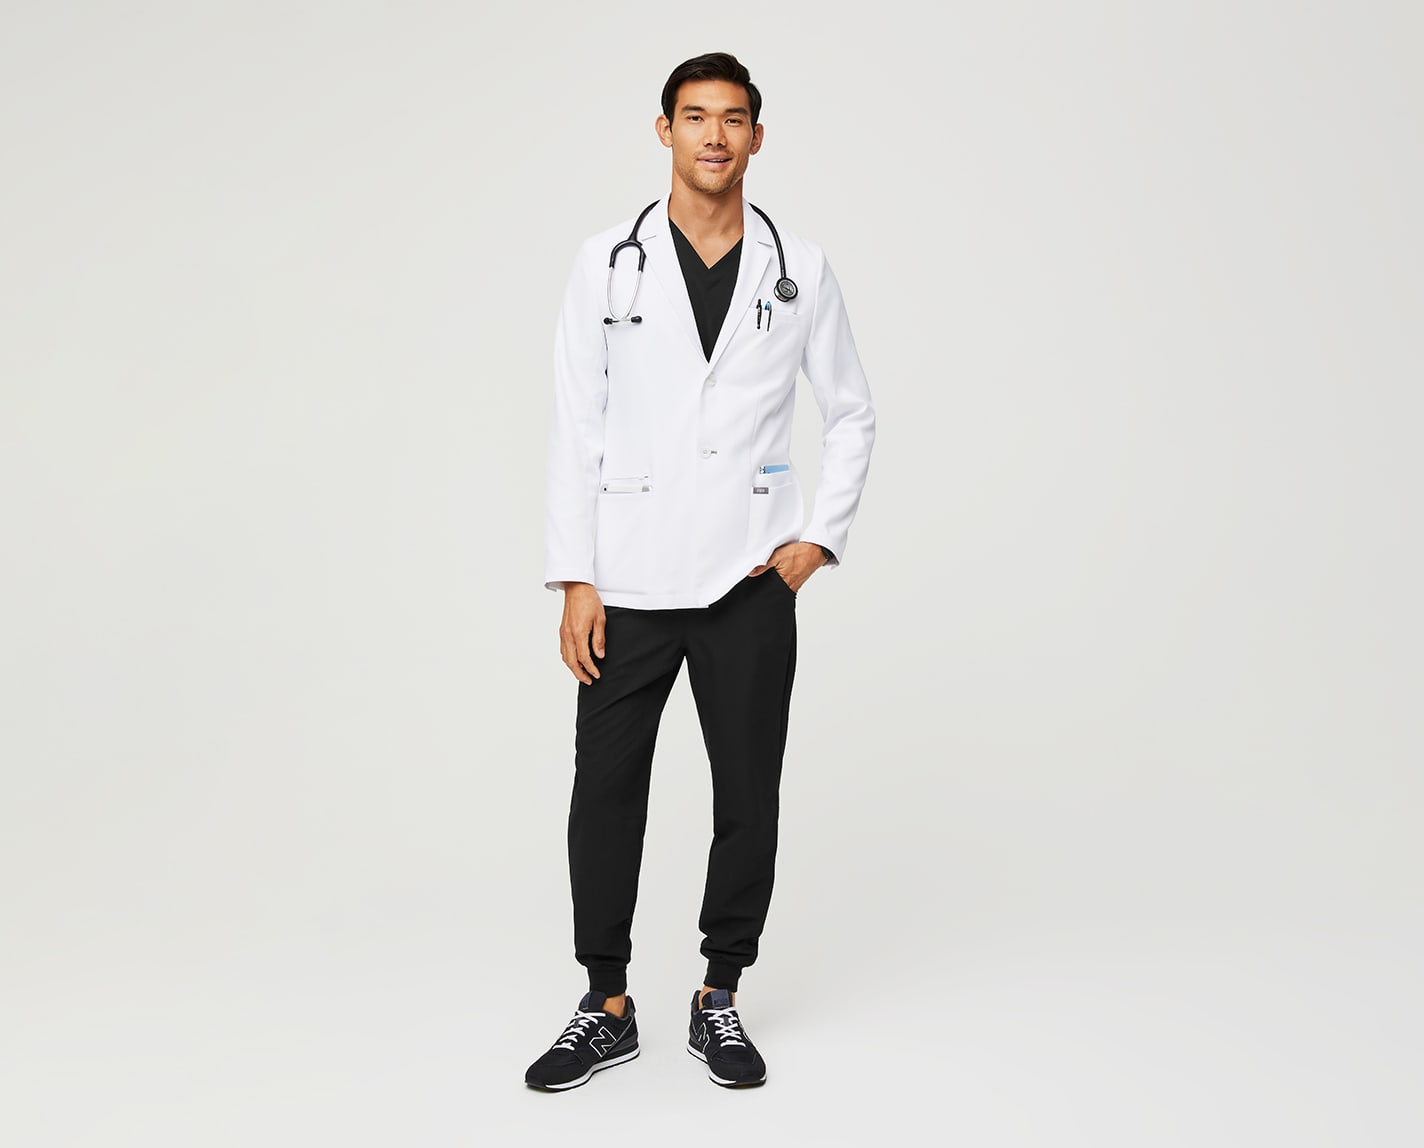 People might ask where you got your lab coat. With a slim fit and 8 pockets, the Harlem Slim Short Lab Coat is a professional and practical option. It's also anti-wrinkle, anti-static, liquid repellent and constructed with anti-sheer yarn.